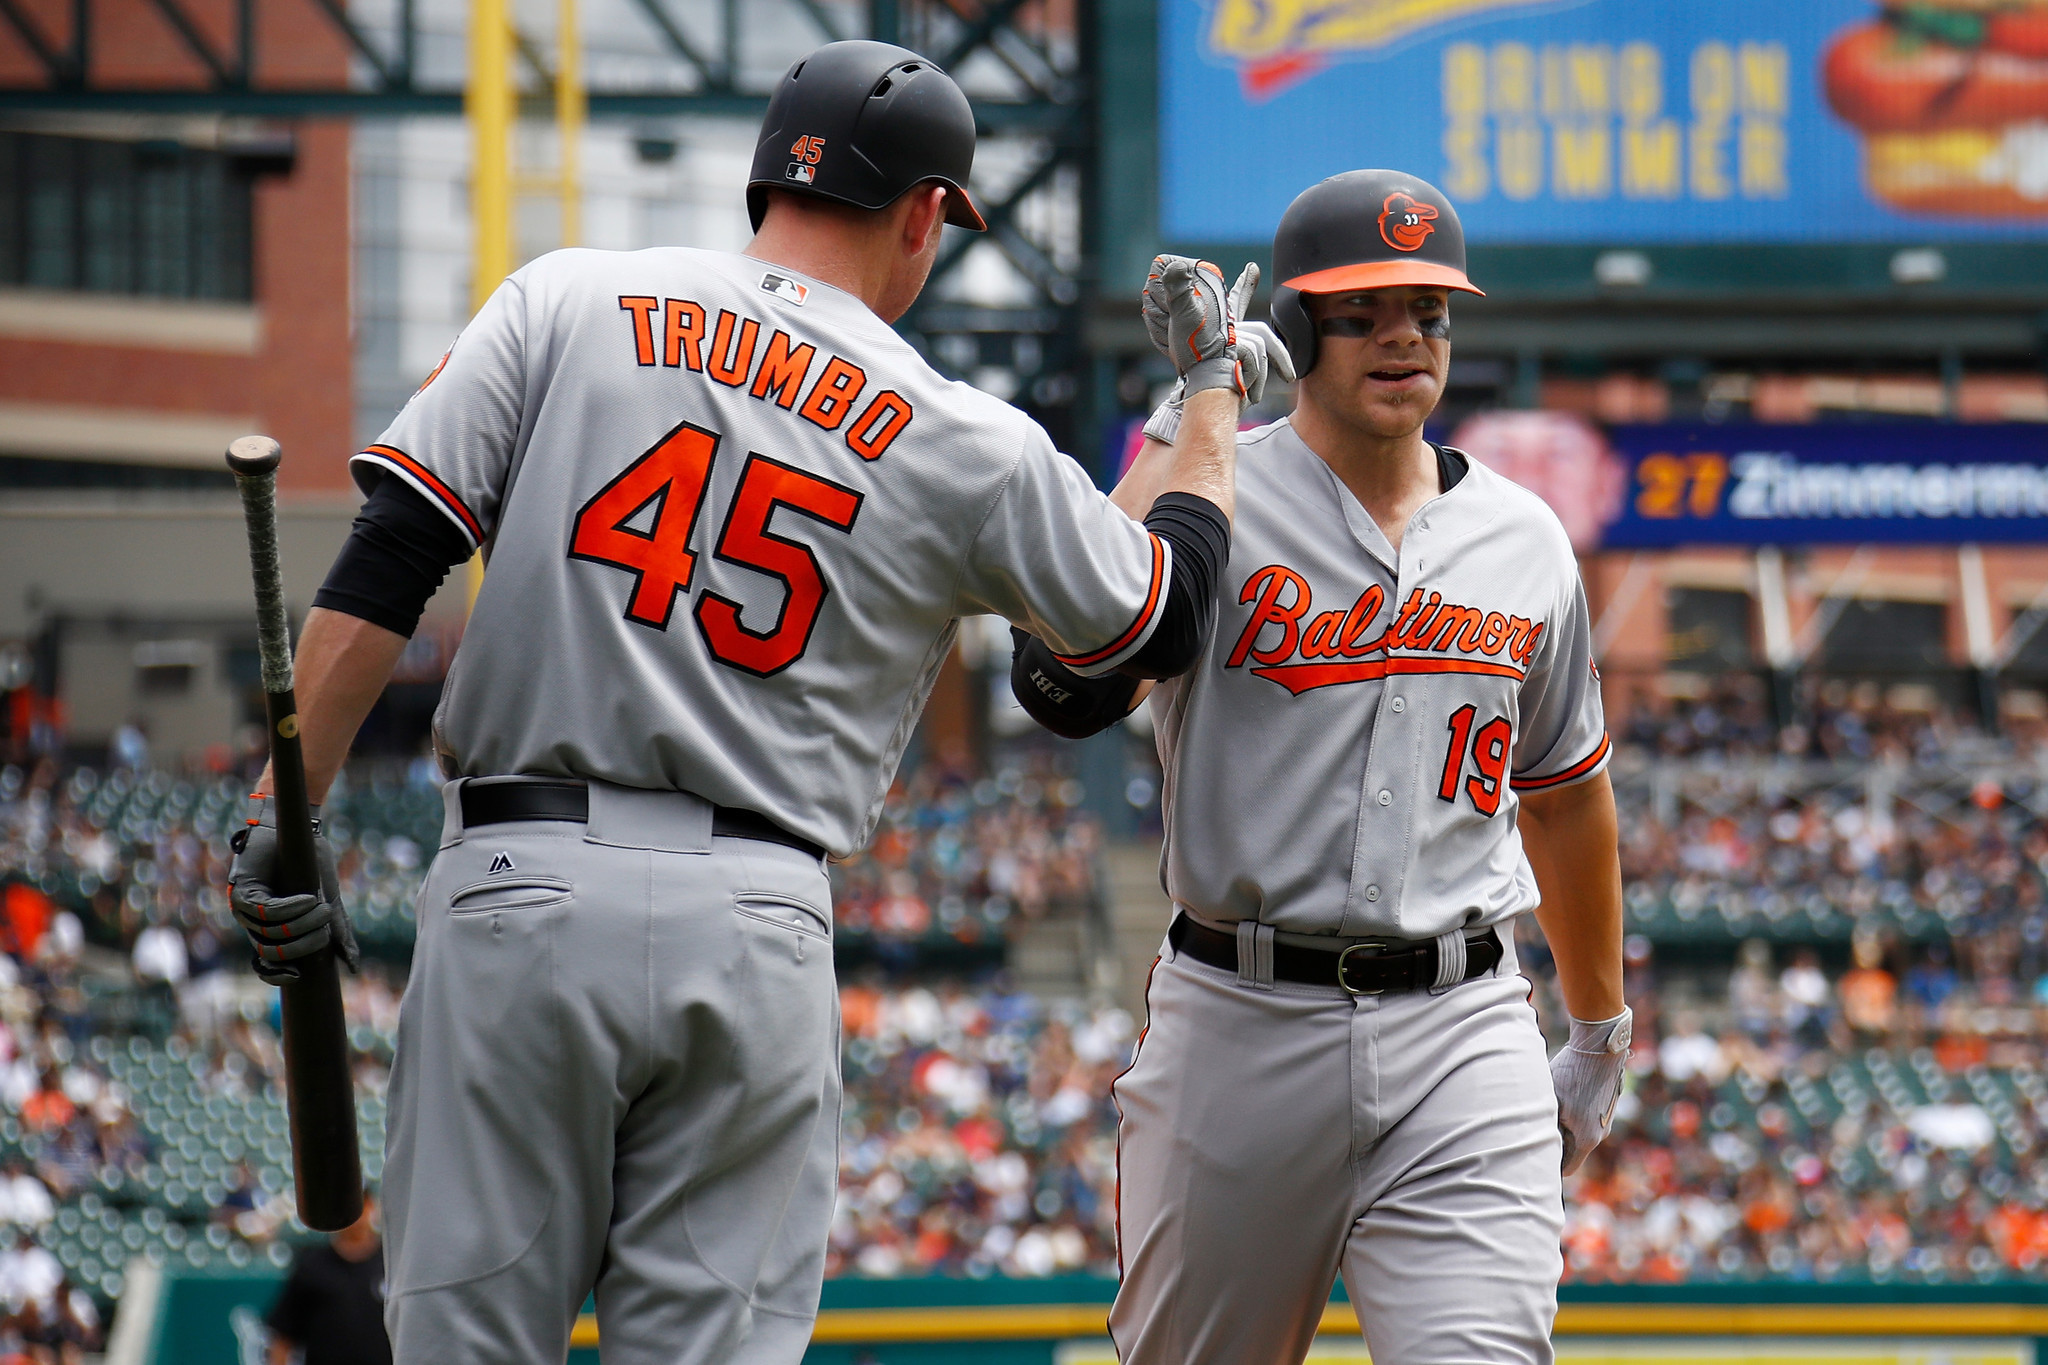 Bal-orioles-on-deck-what-to-watch-sunday-at-astros-20170527